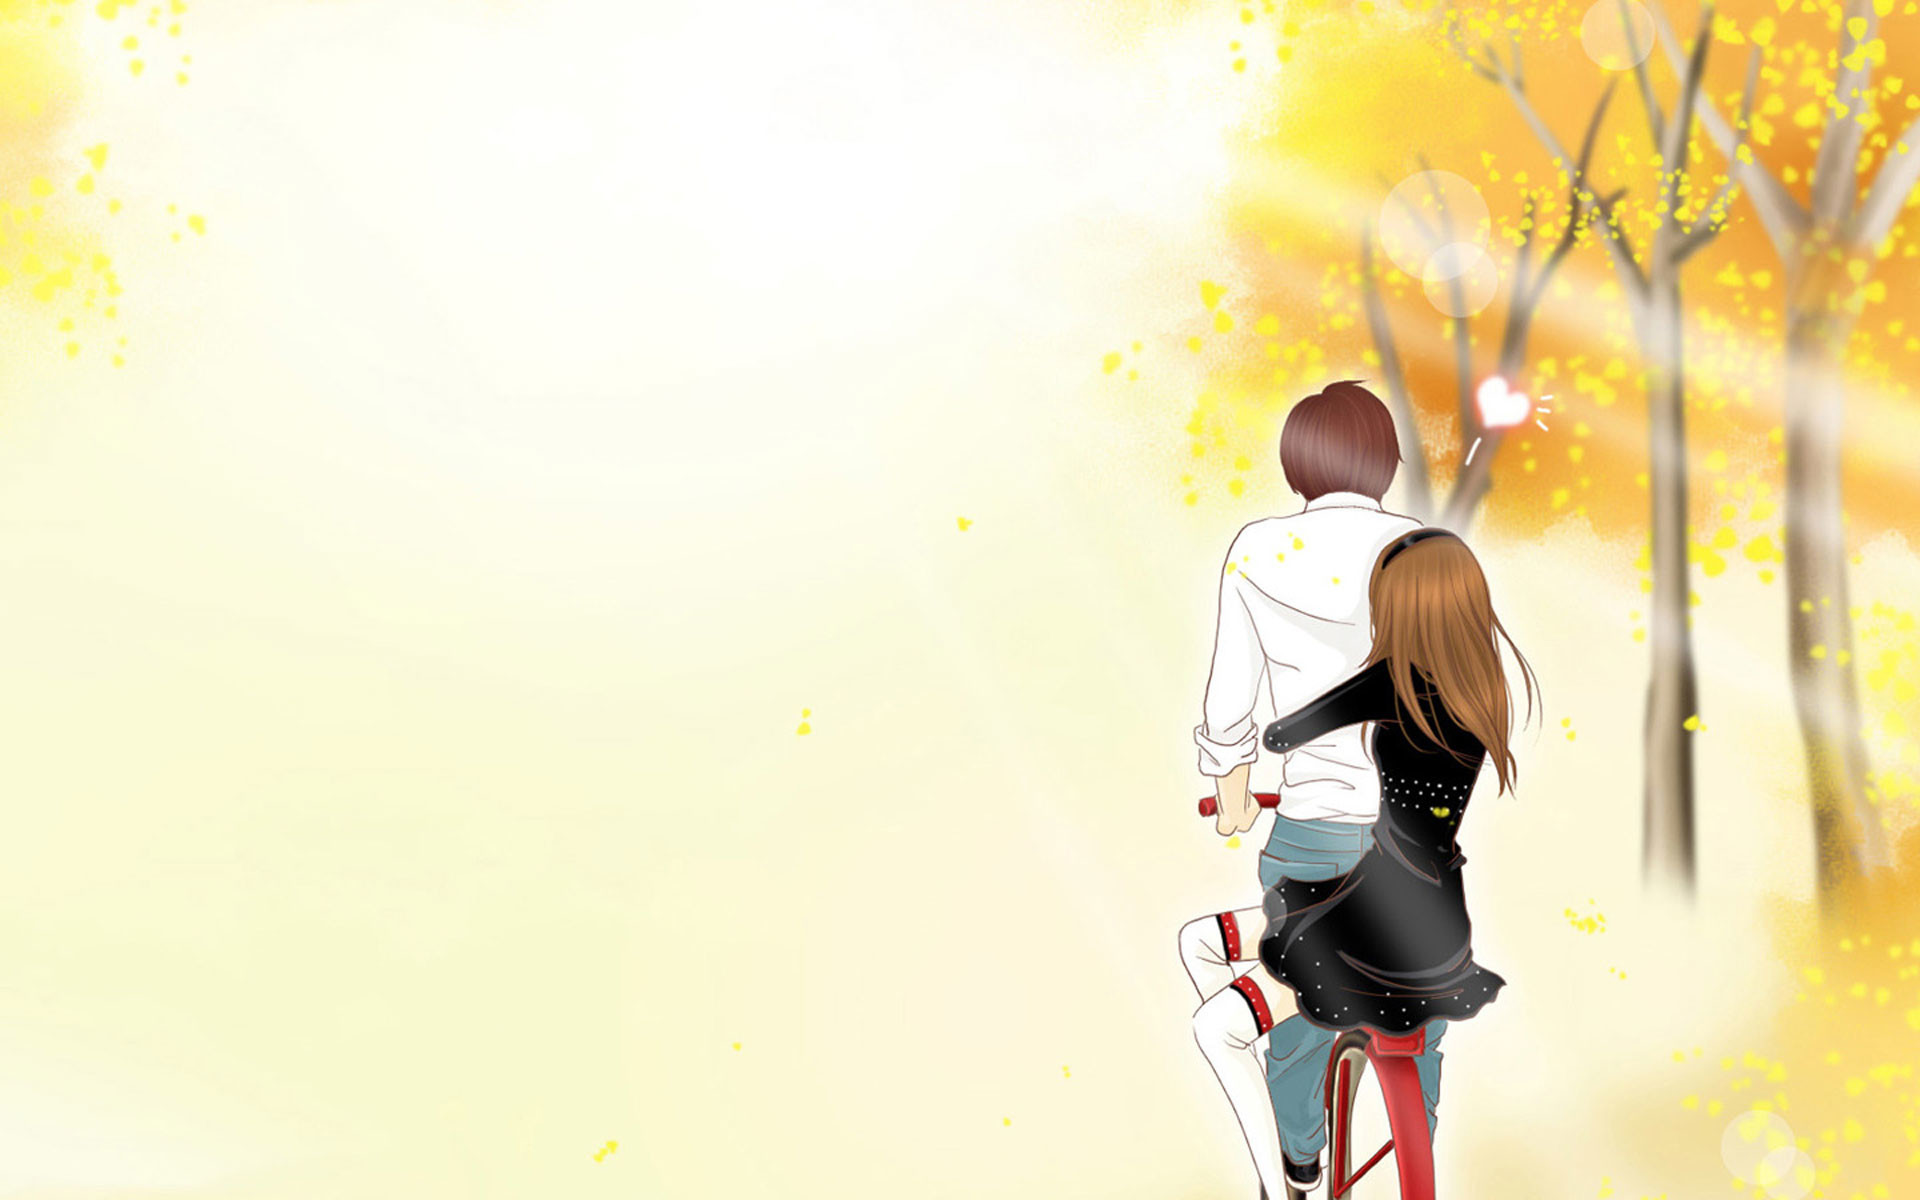 1920x1200 Romantic journey anime wallpaper comics desktop background | Cartoon .